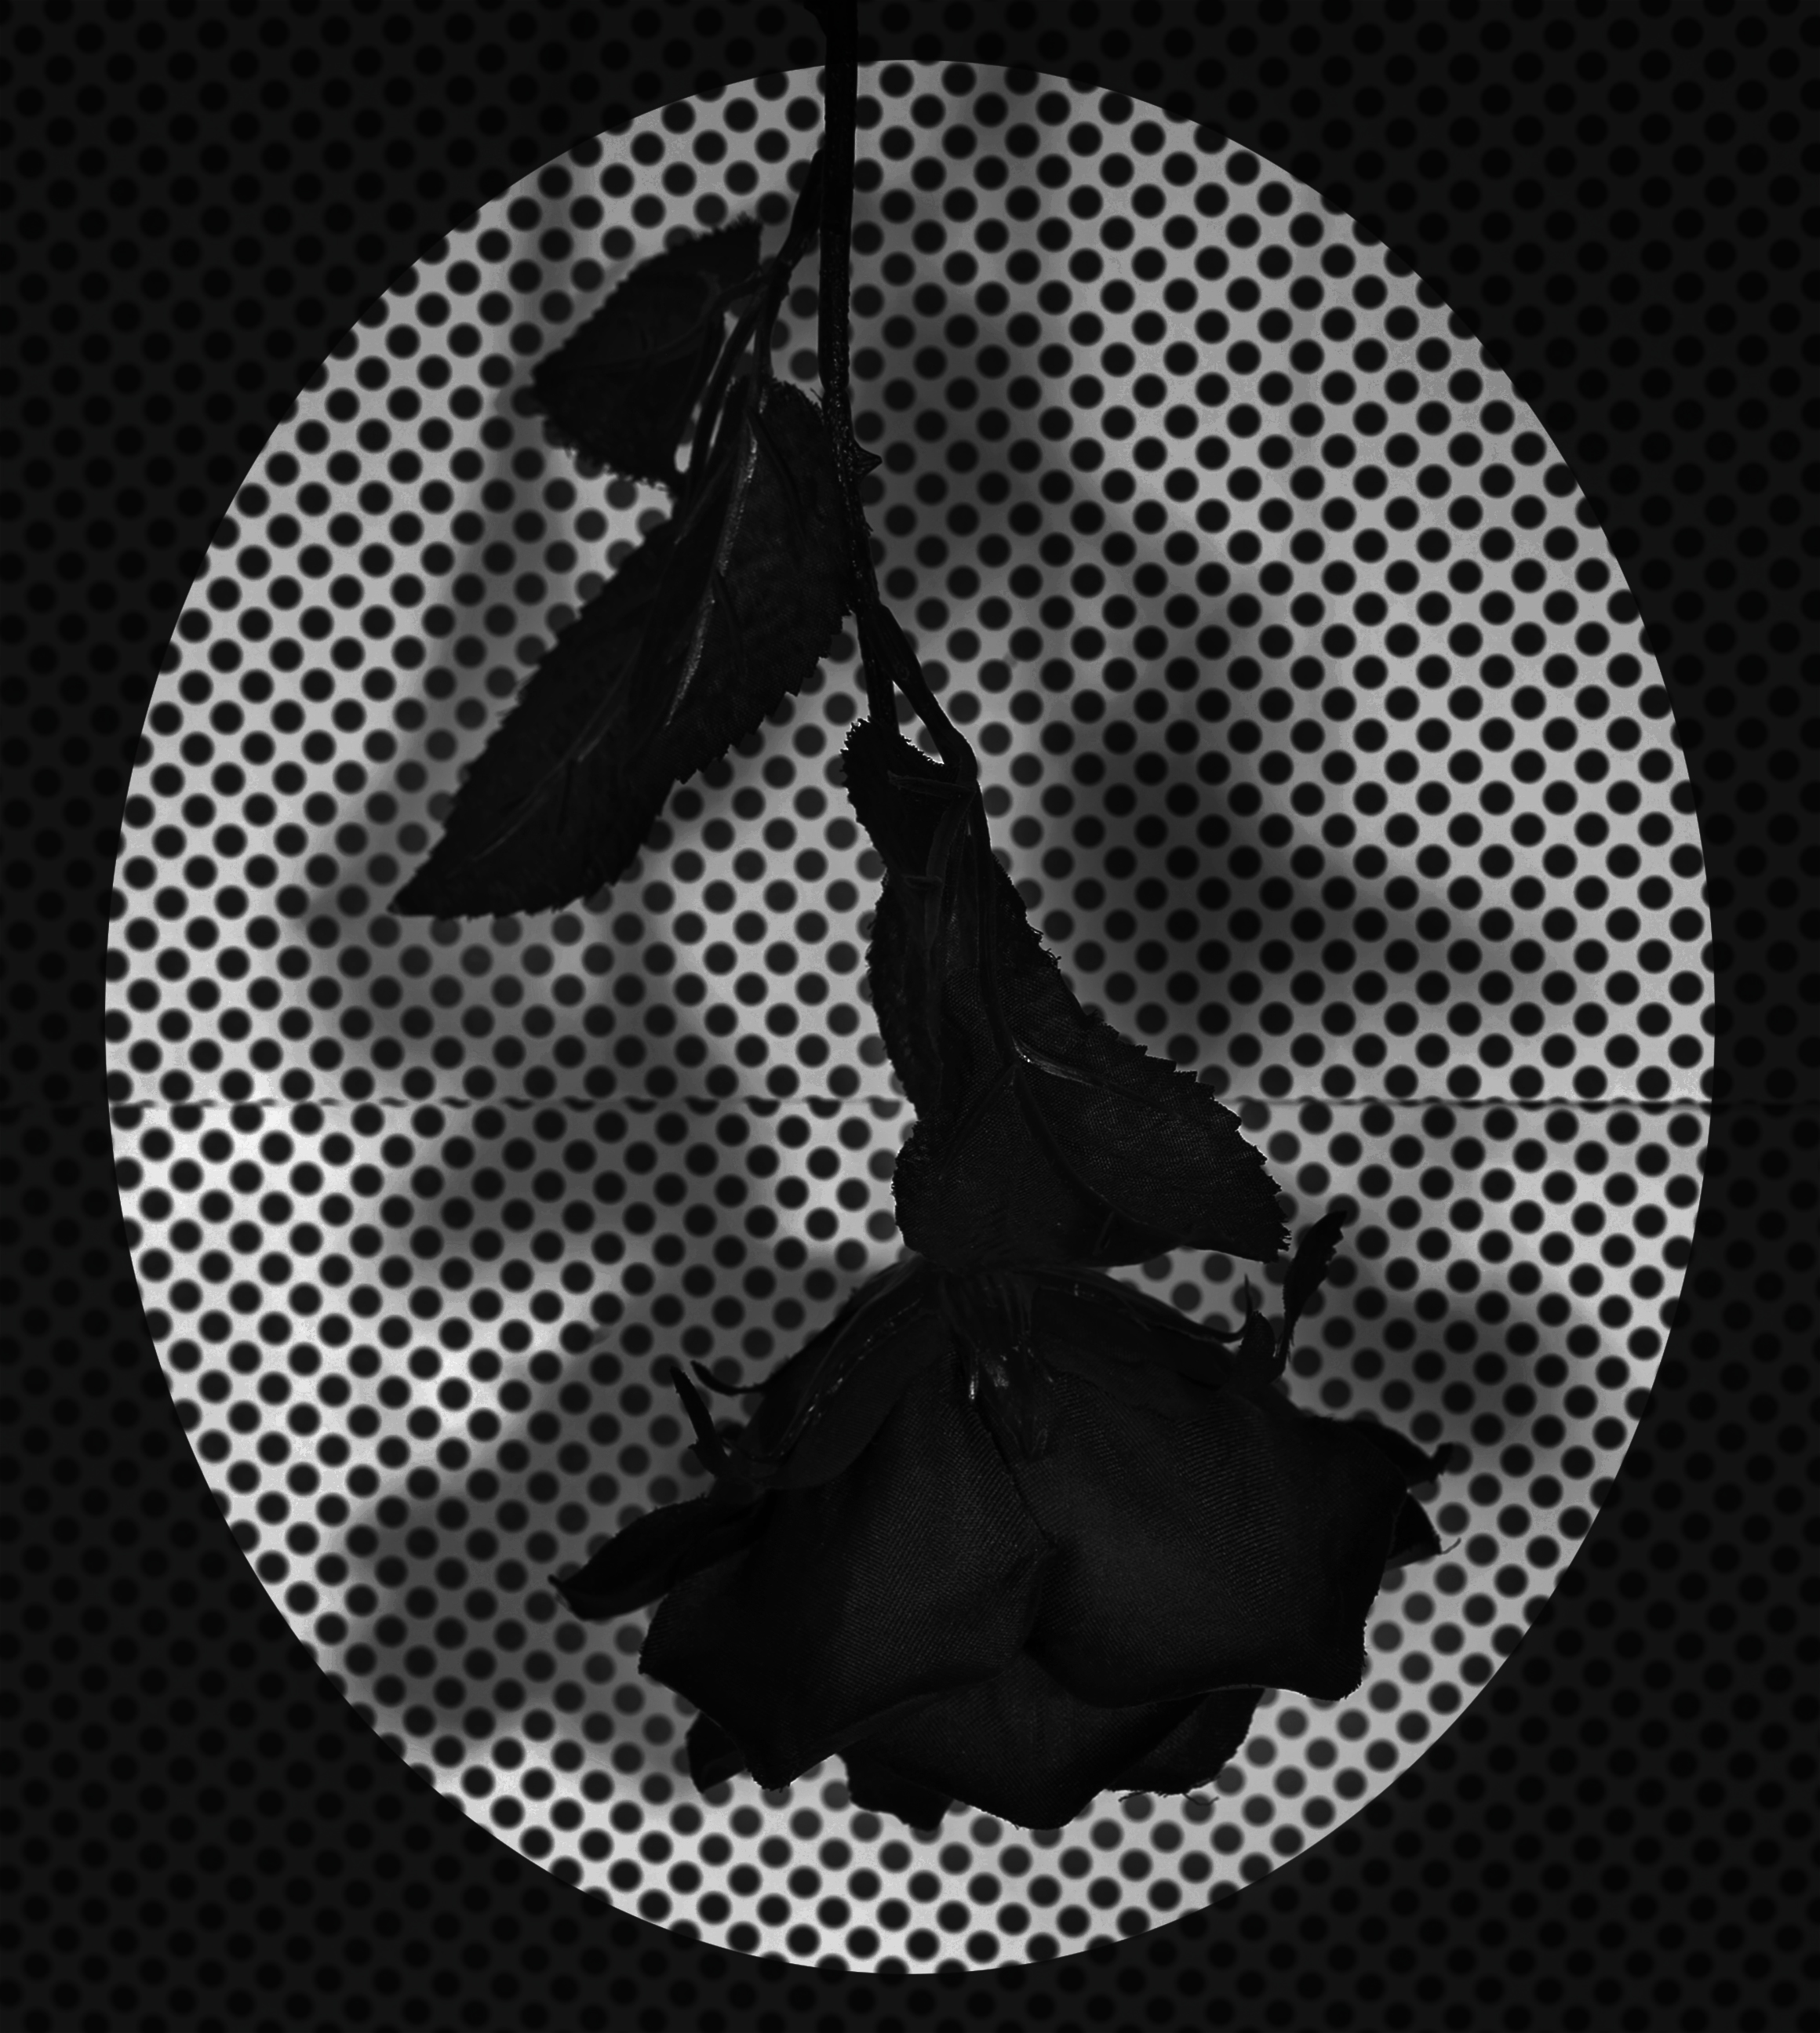 Fake Flower Study No. 3 from Mind Loop, 20 by 24 inches, Archival Pigment Print, 2018